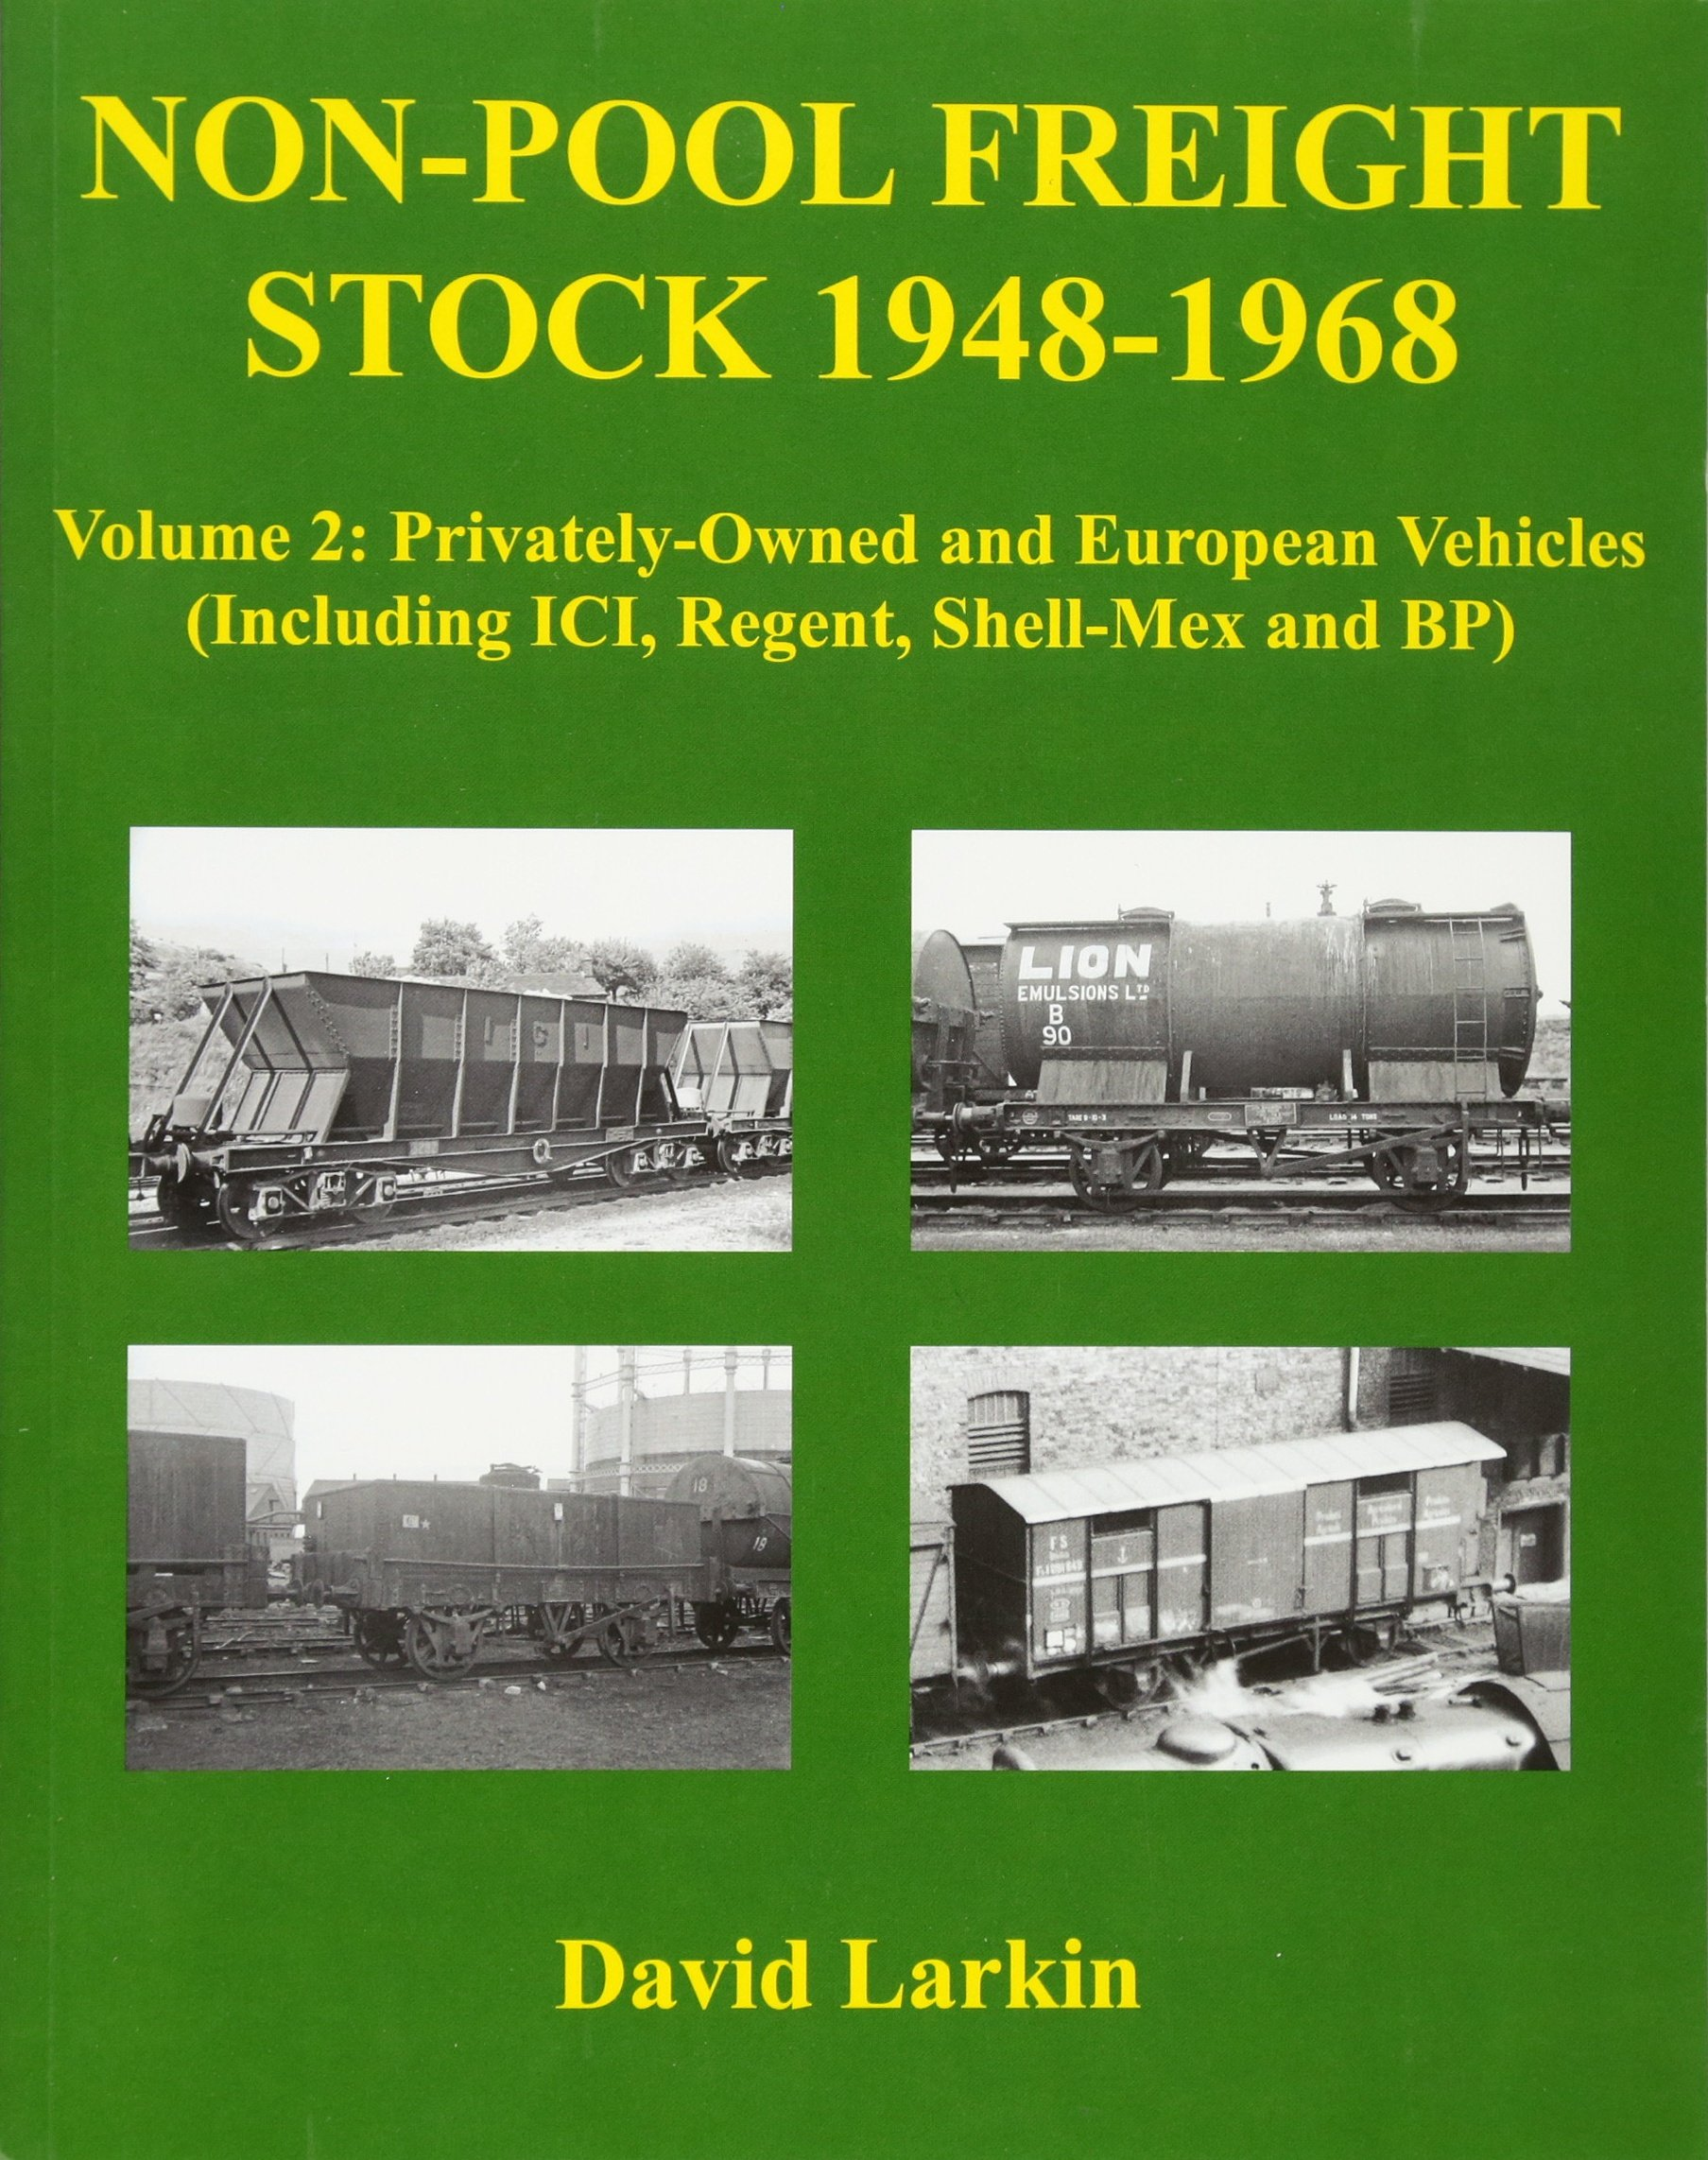 Download Non-Pool Freight Stock 1948-1968: Privately-Owned and European Vehicles (Including ICI, Regent, Shell-Mex and BP) Volume 2 pdf